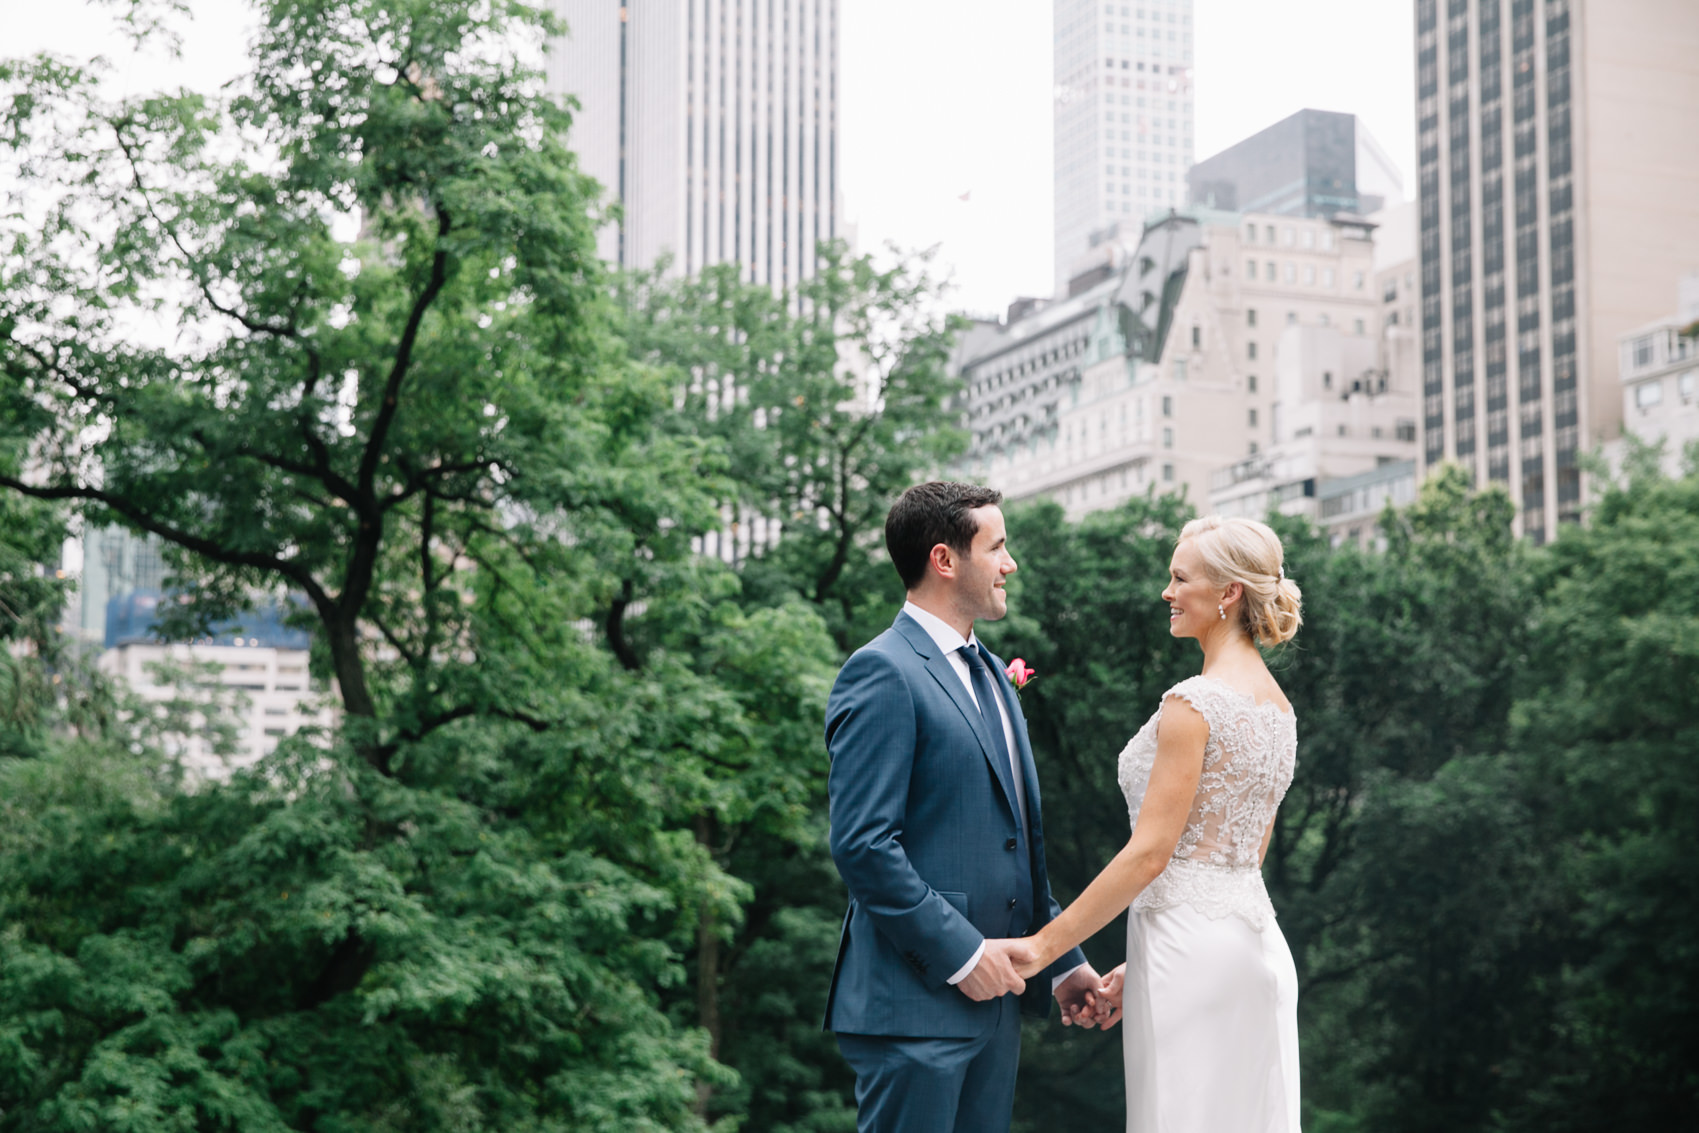 NYC-wedding-photos-by-Tanya-Isaeva-35.jpg